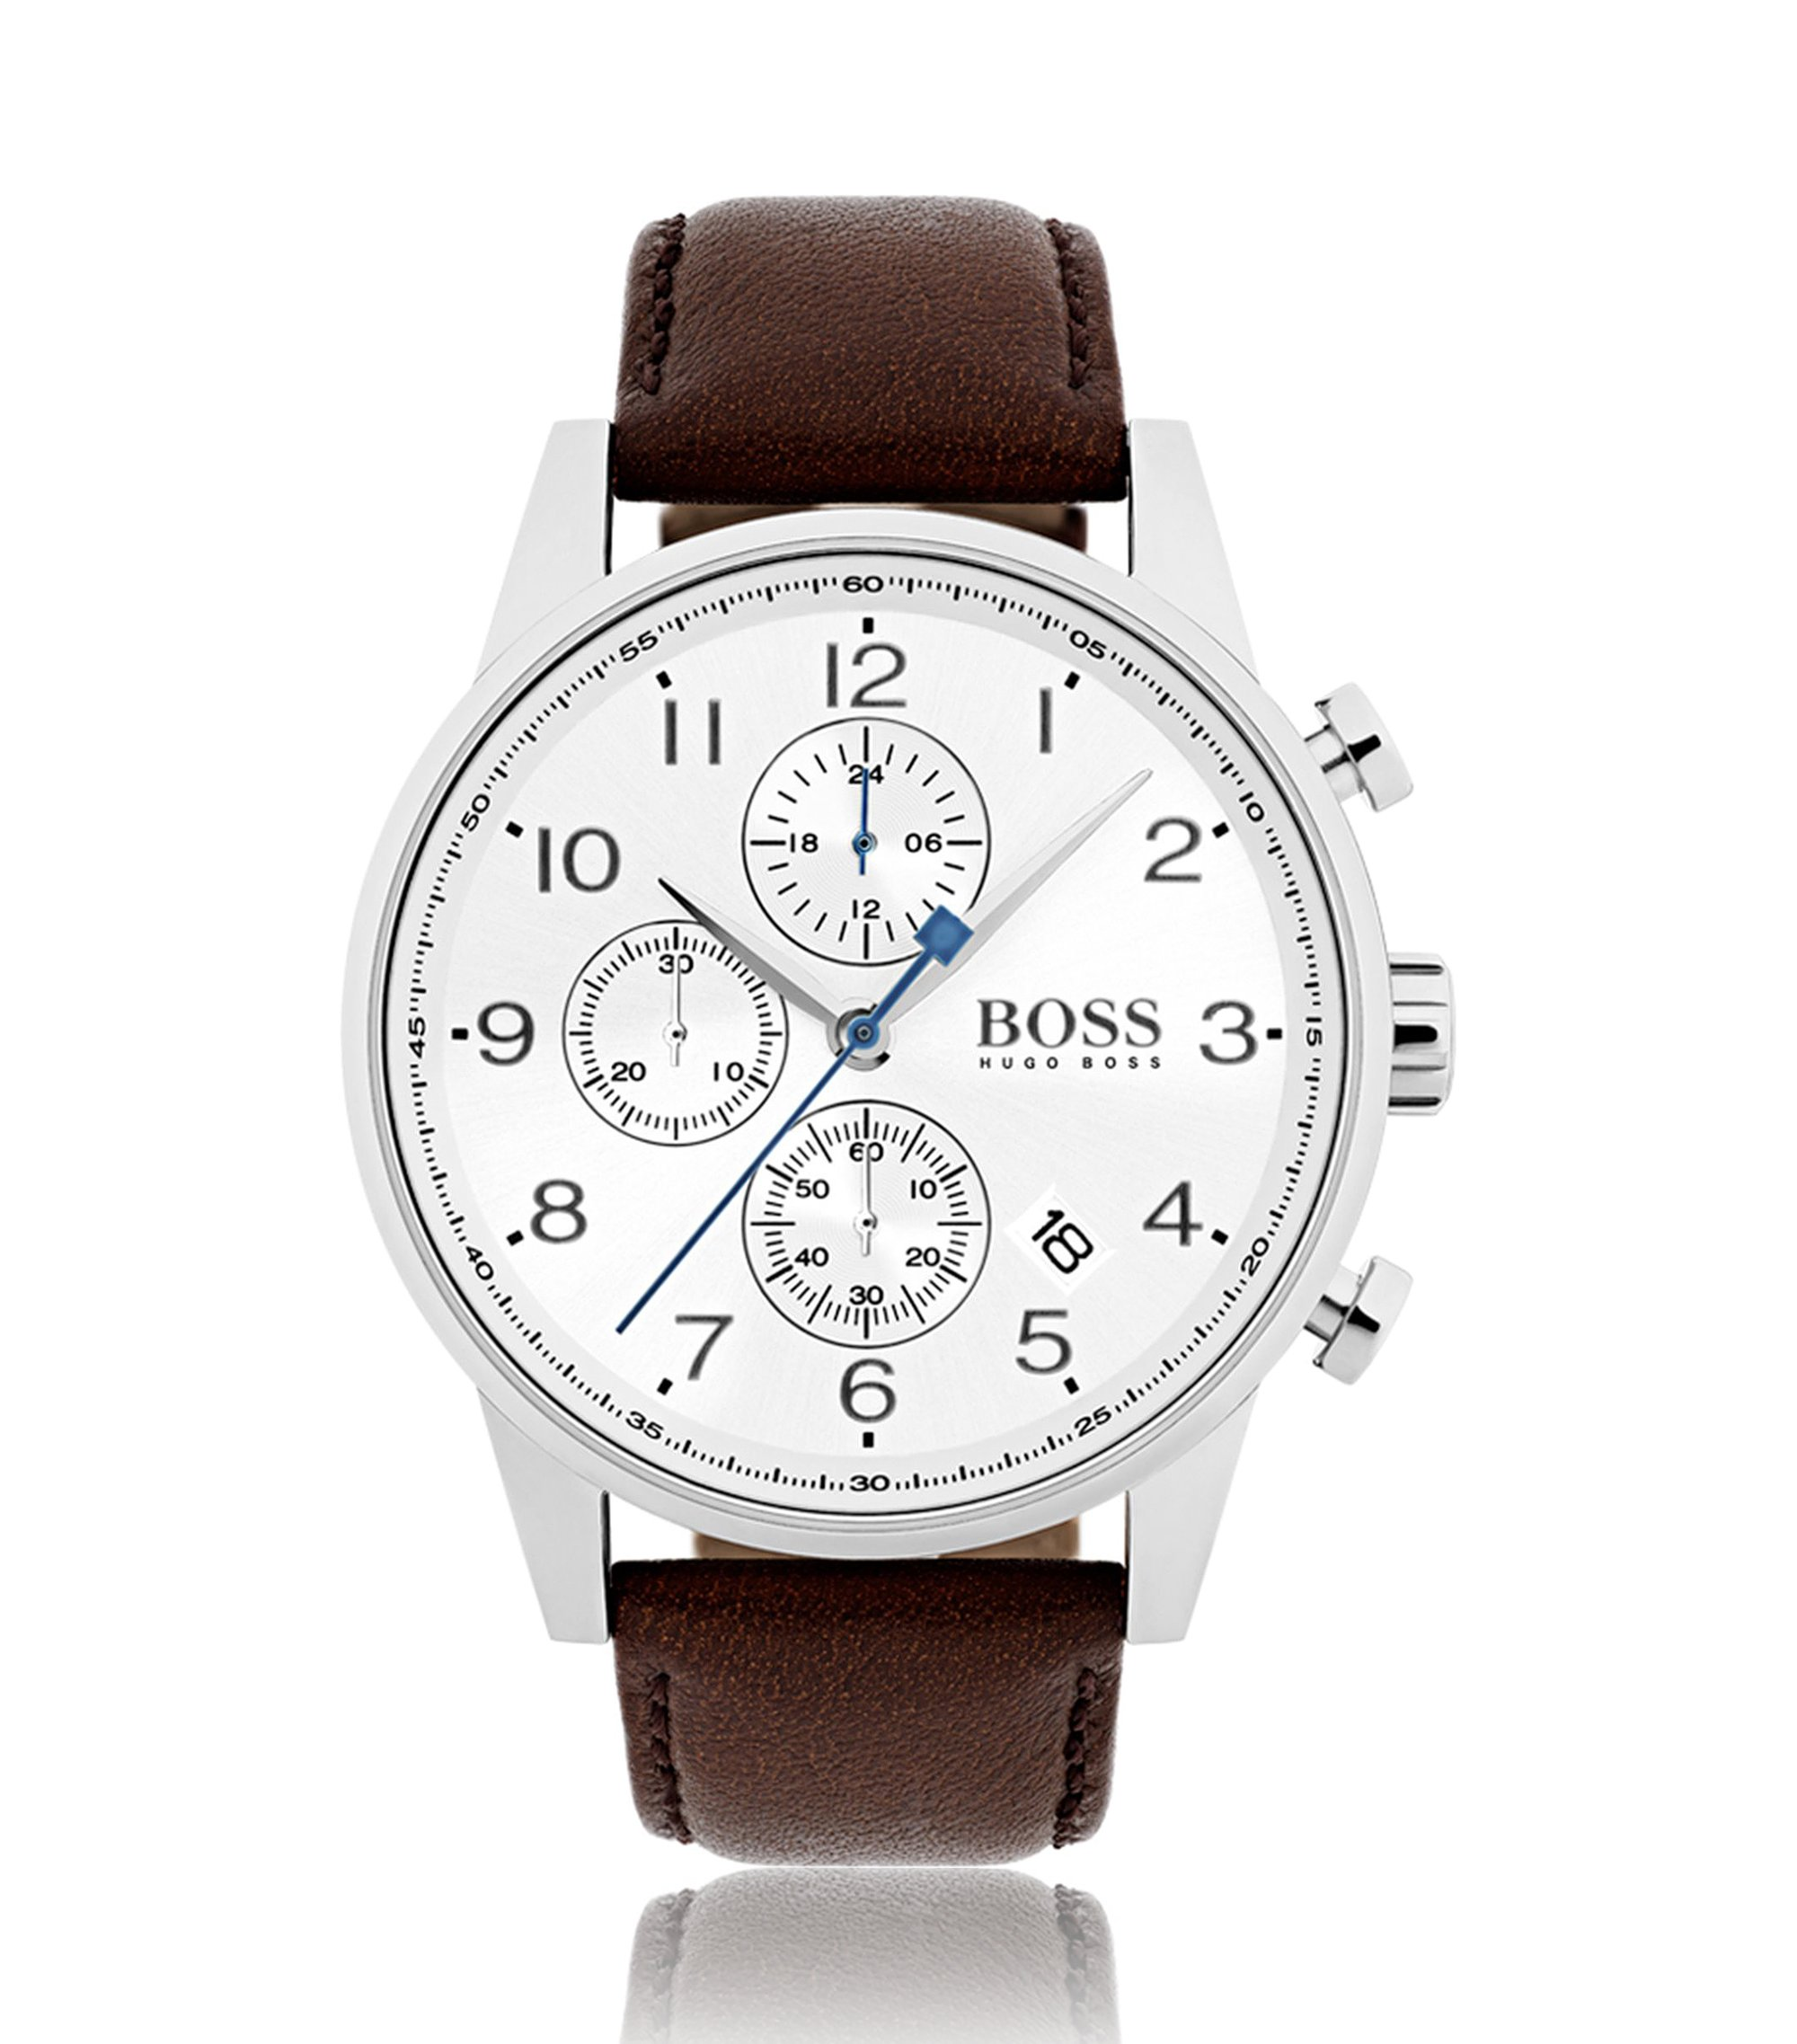 Polished stainless-steel watch with silver-white dial and leather strap, Dark Brown